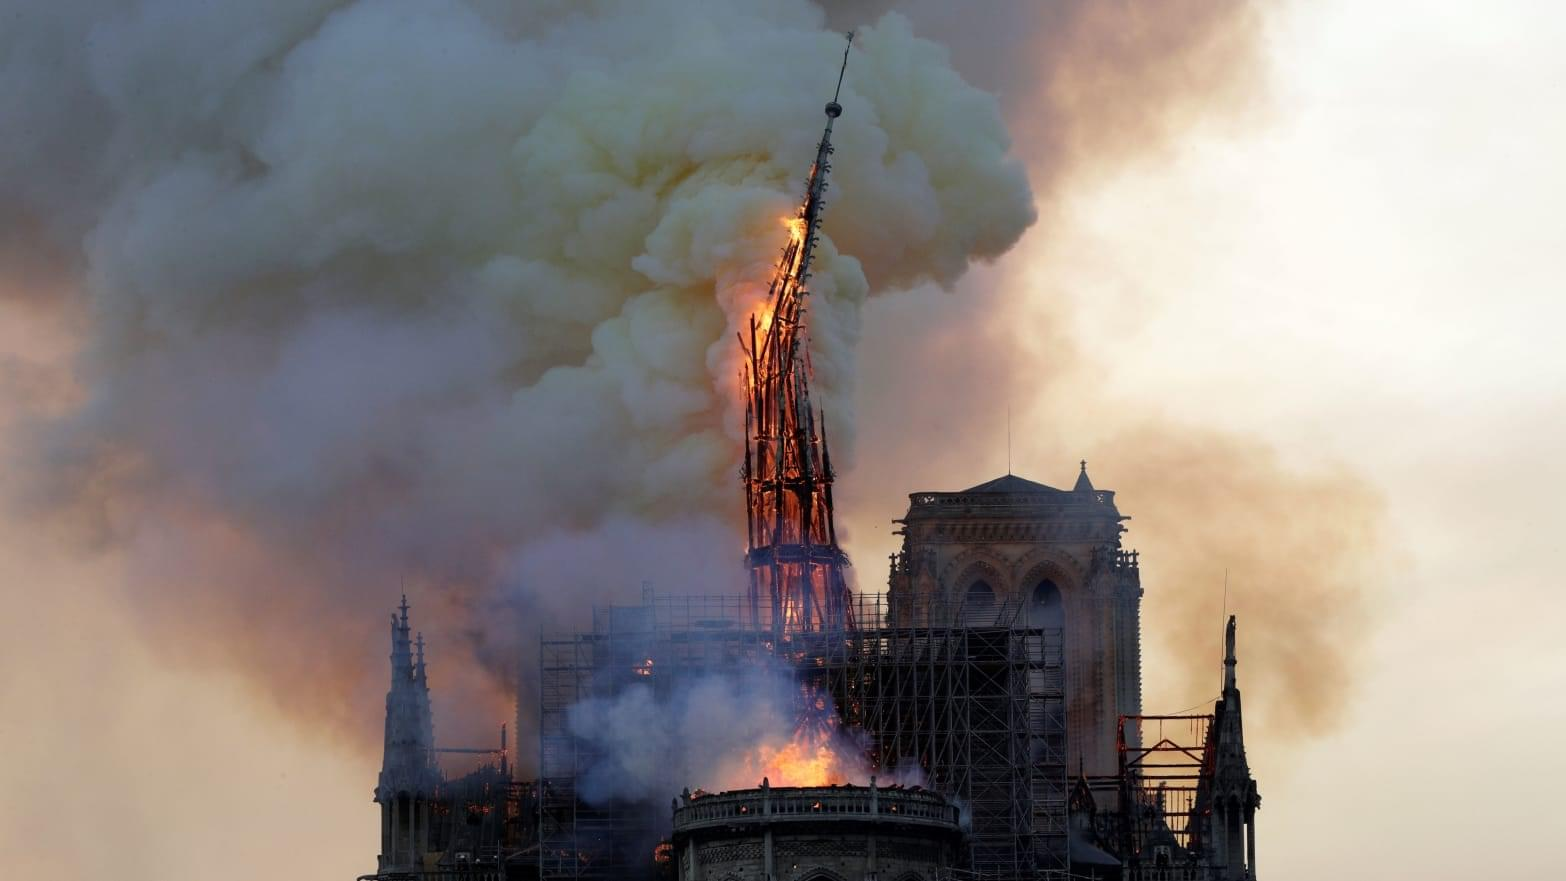 Paris' Historic Notre Dame Cathedral Severely Damaged in Catastrophic Fire